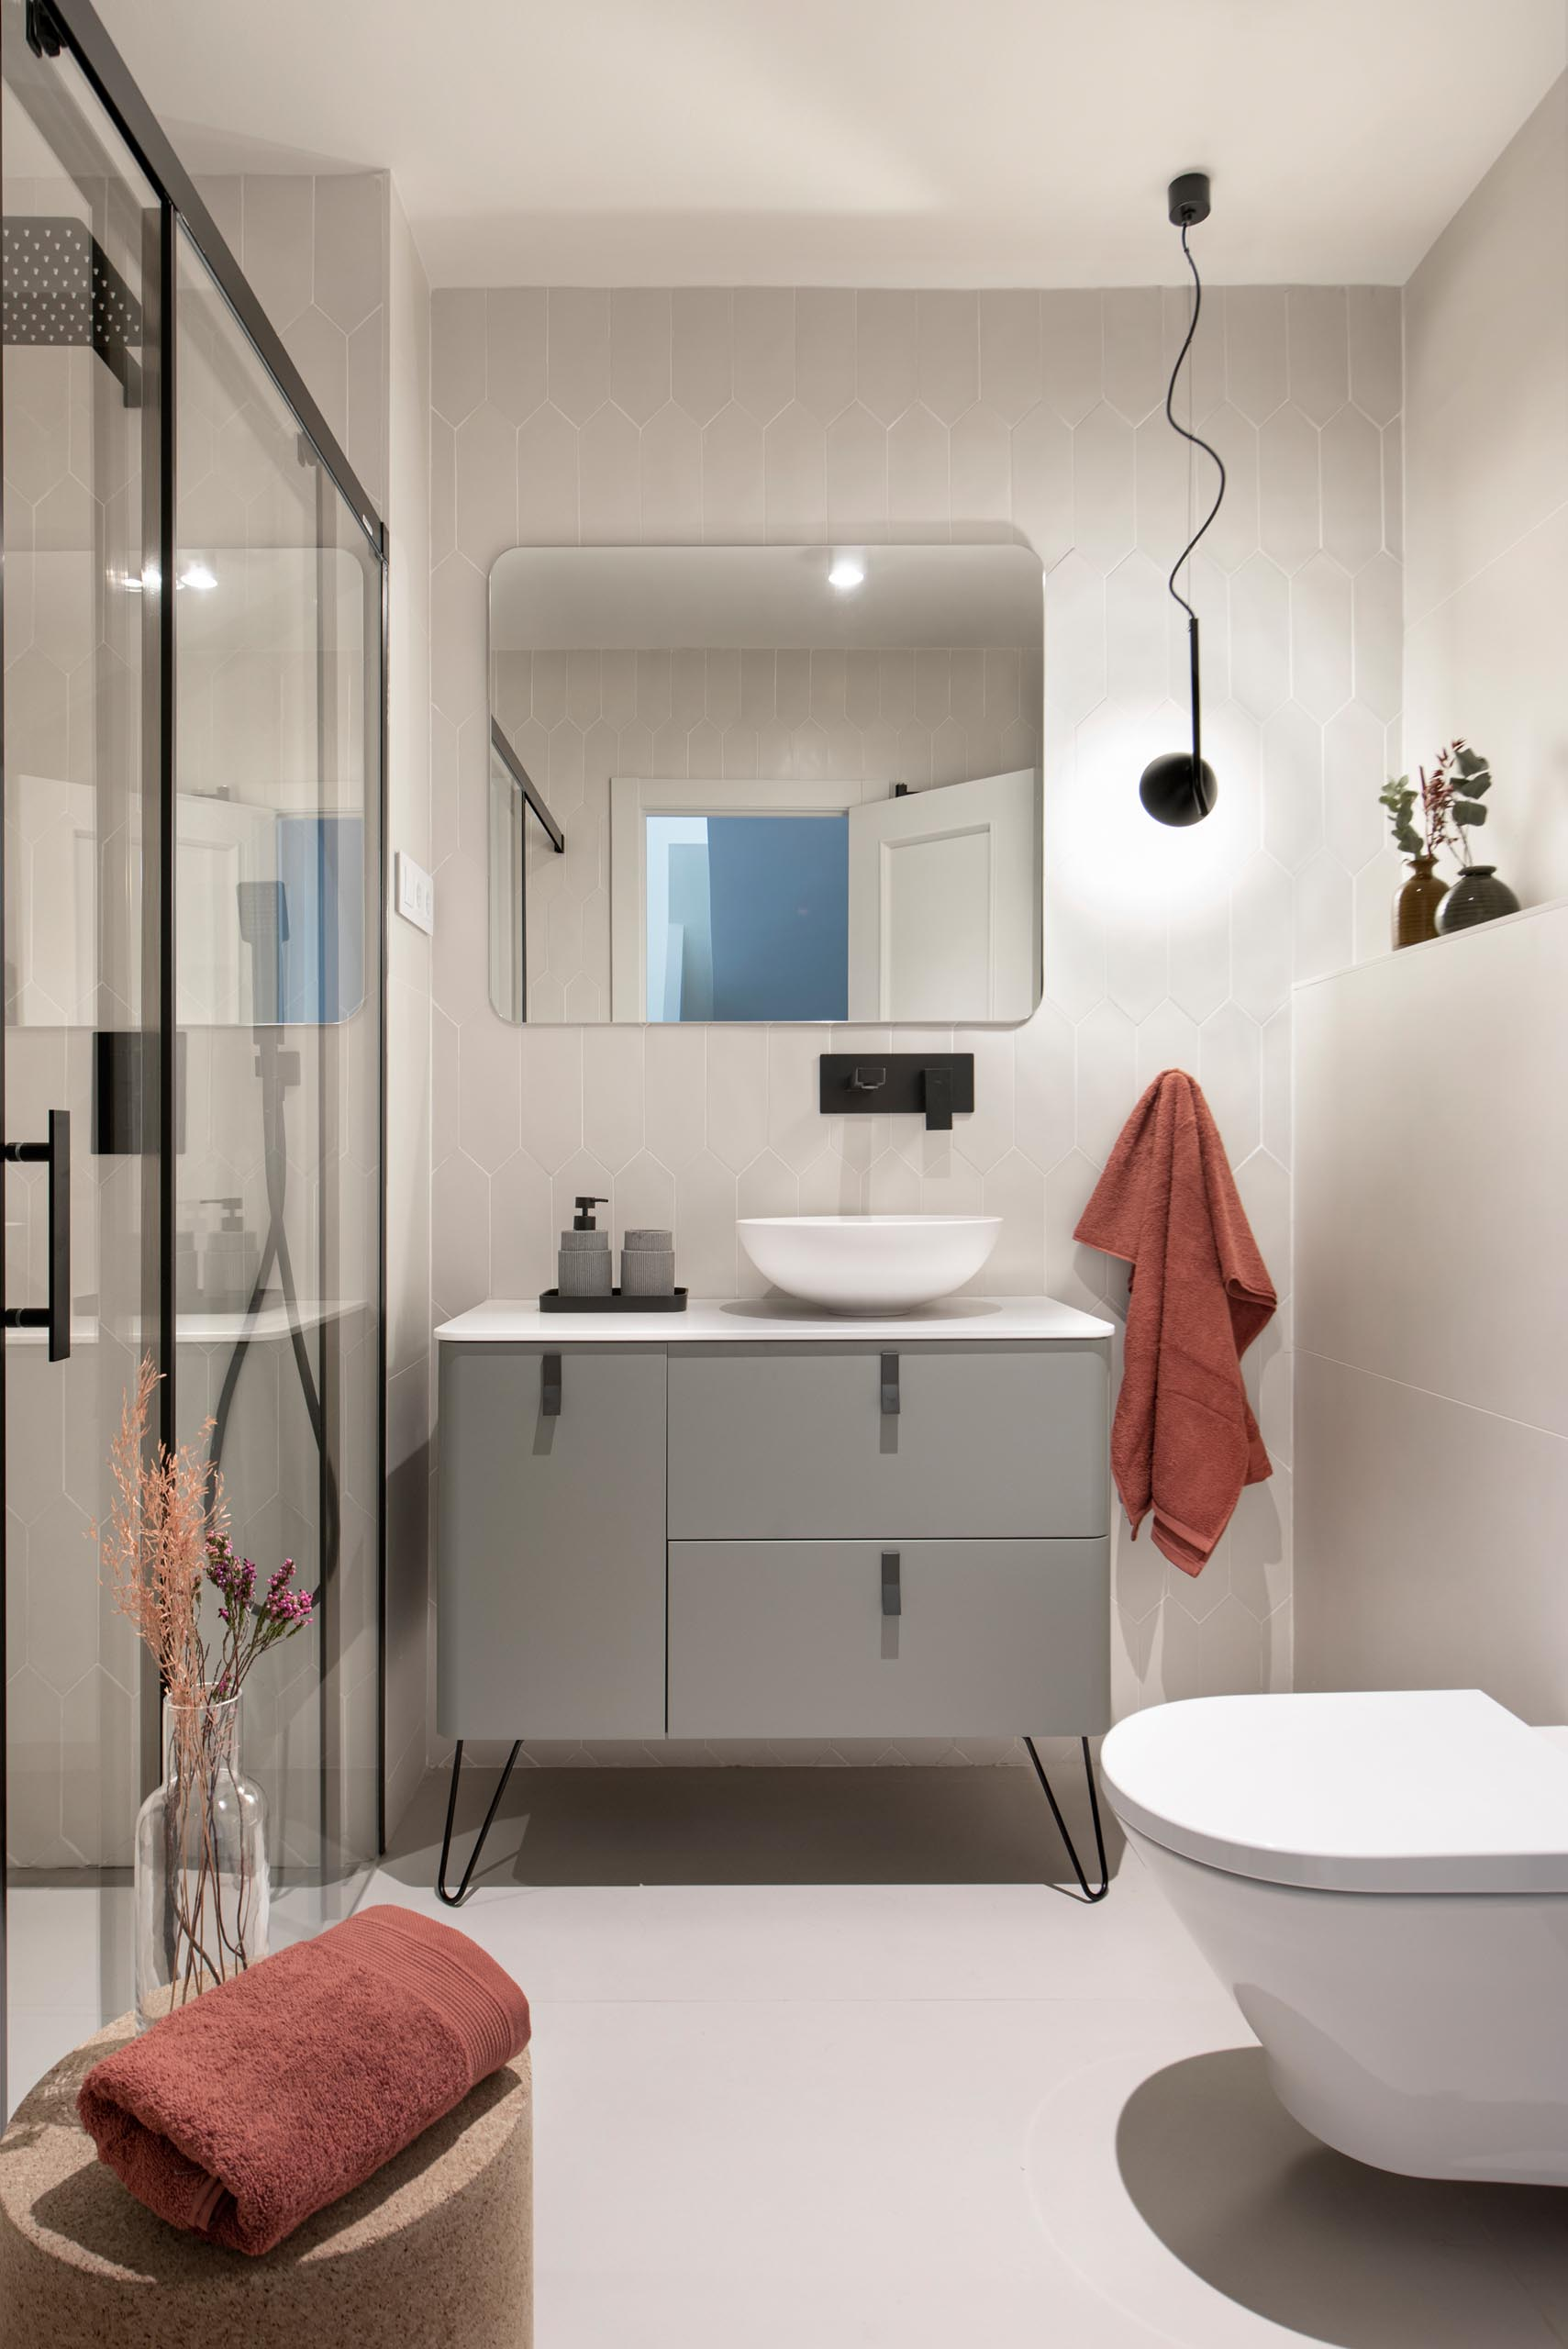 This modern guest bathroom has a simple neutral color palette with a gray vanity, light gray tiles, and black accents.